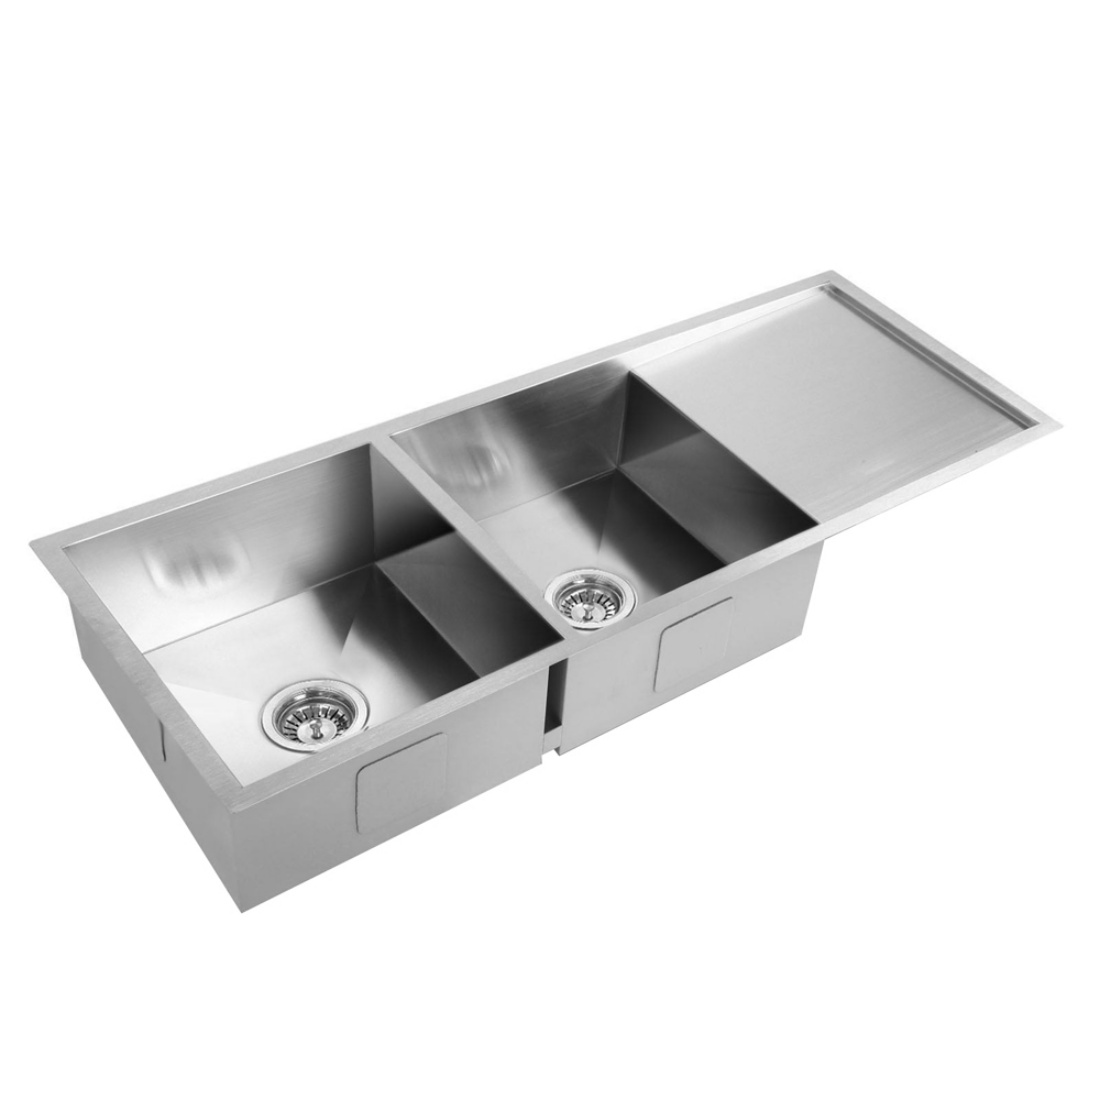 Stainless Steel Kitchen/Laundry Sink w/ Strainer Waste 1114 x 450mm